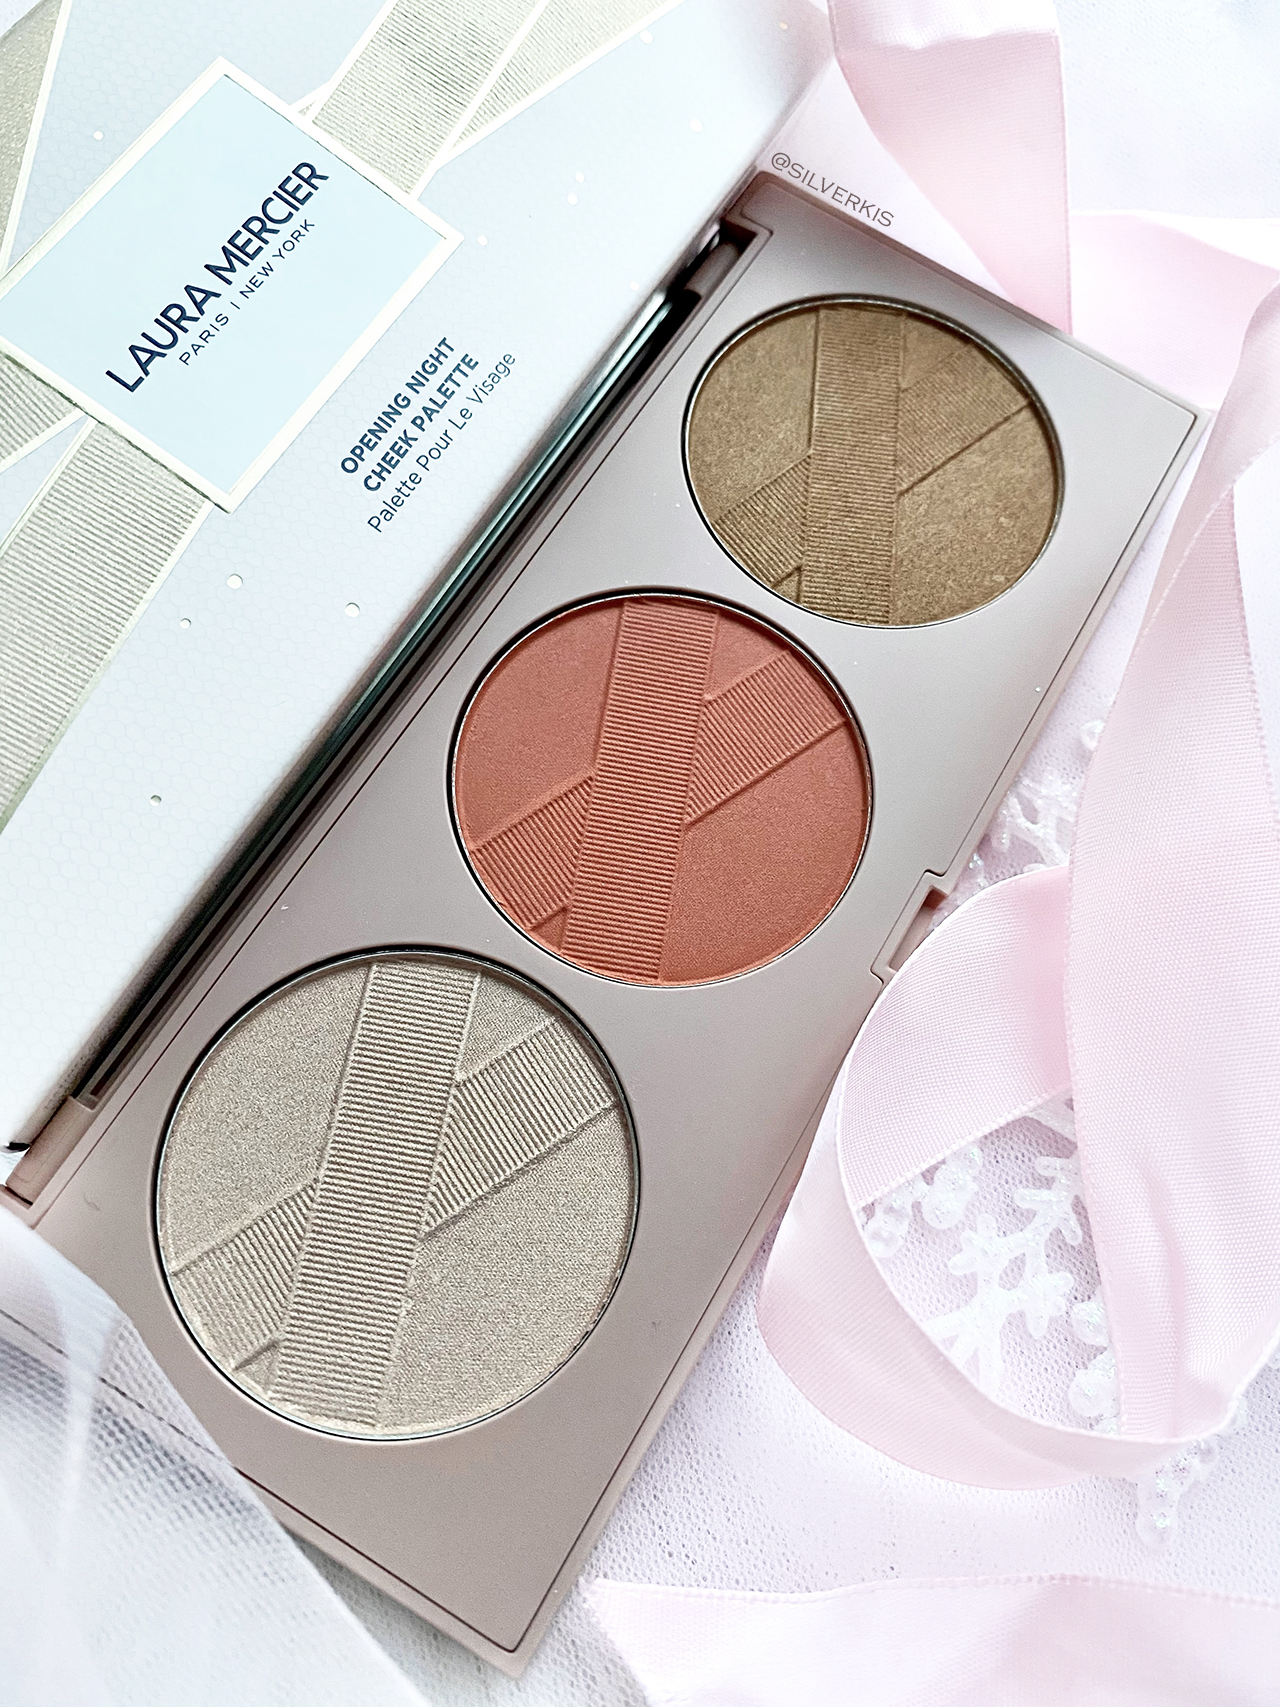 Laura Mercier Opening Night Cheek Palette for Holiday 2020